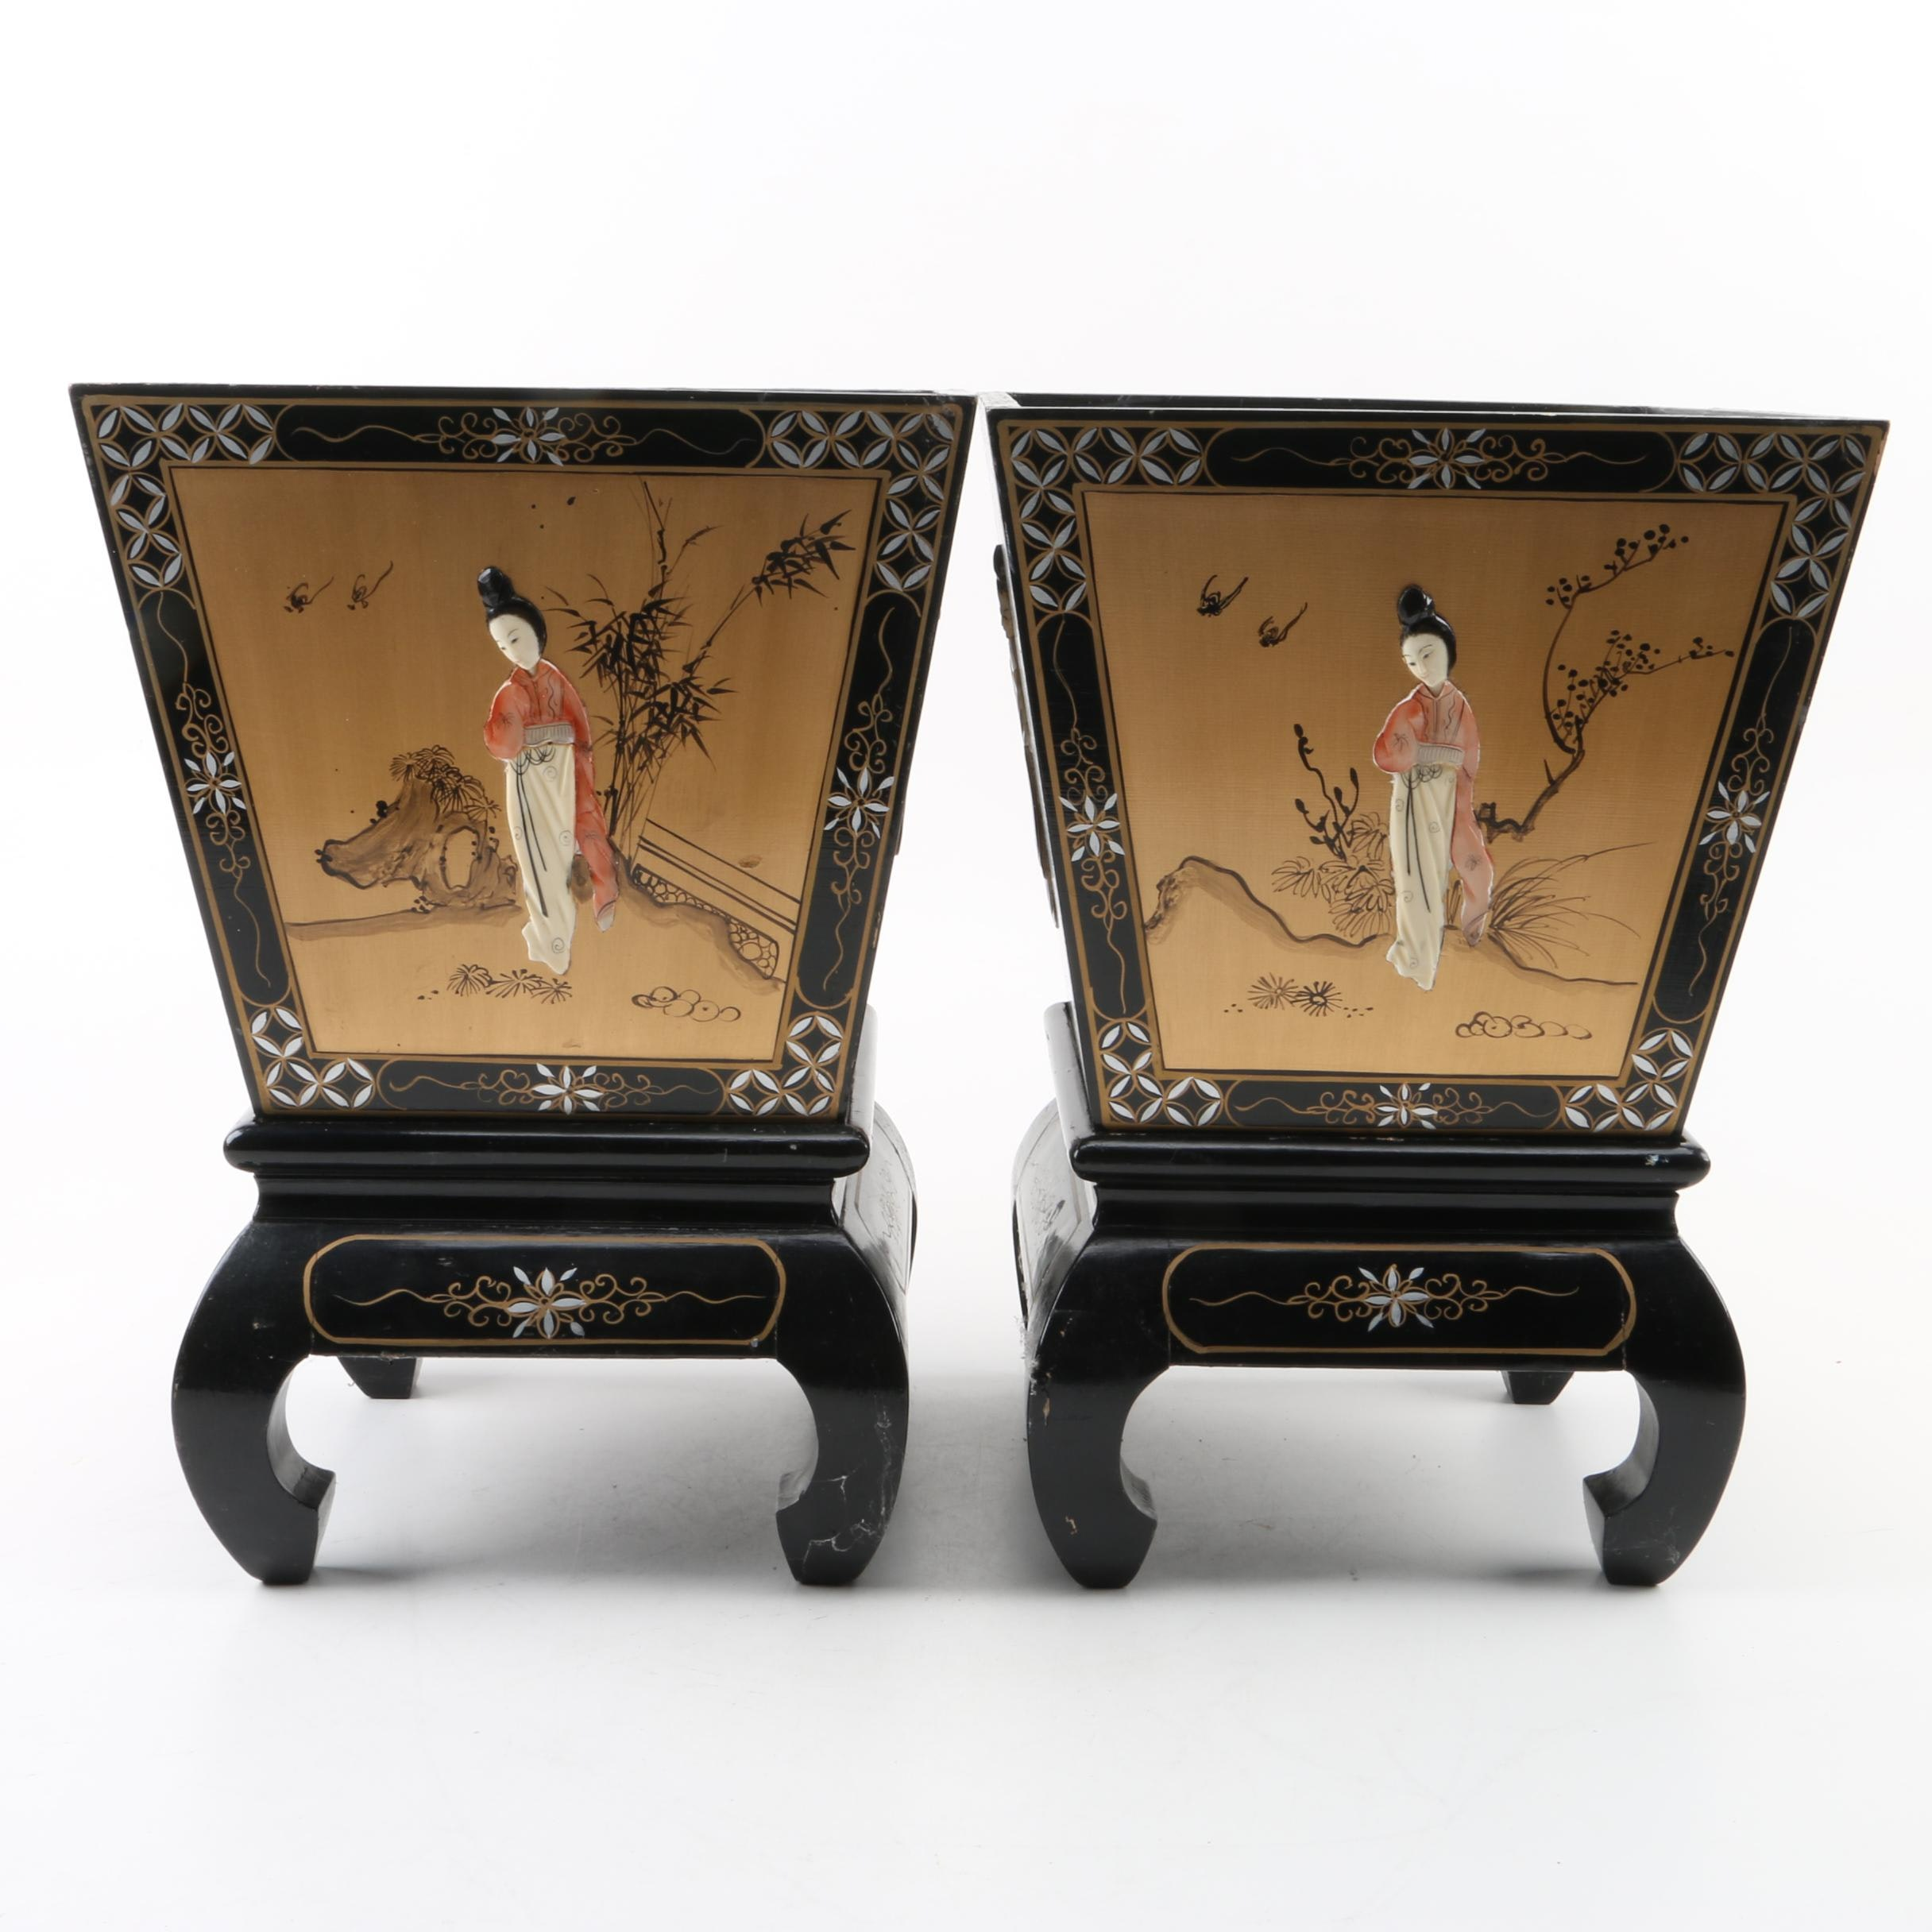 Pair of Hand-Painted Chinoiserie Wood Planters with Wood Stands